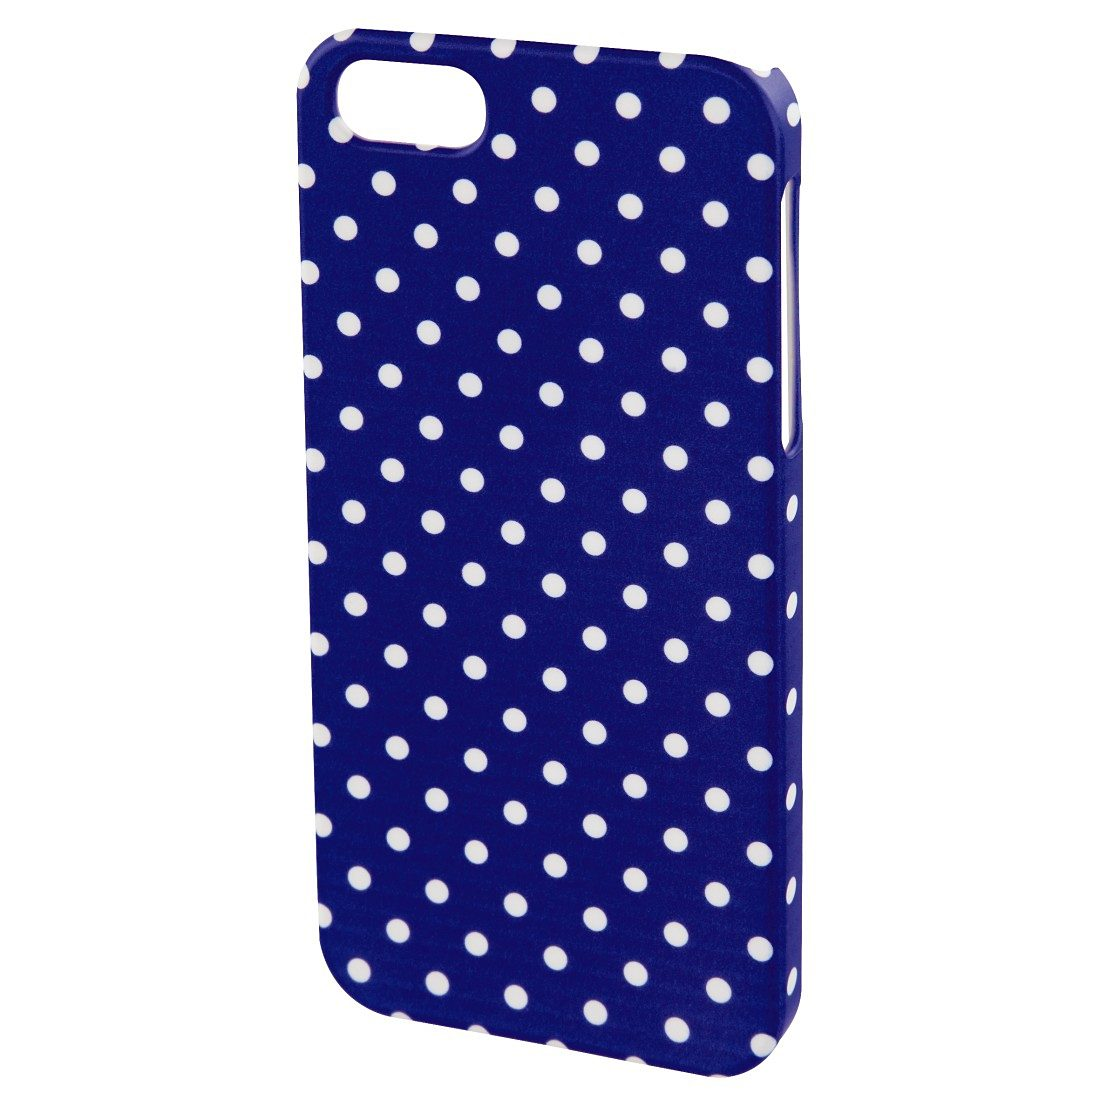 Hama Cover Polka Dots für Apple iPhone 5/5s/SE, Blau/Weiß